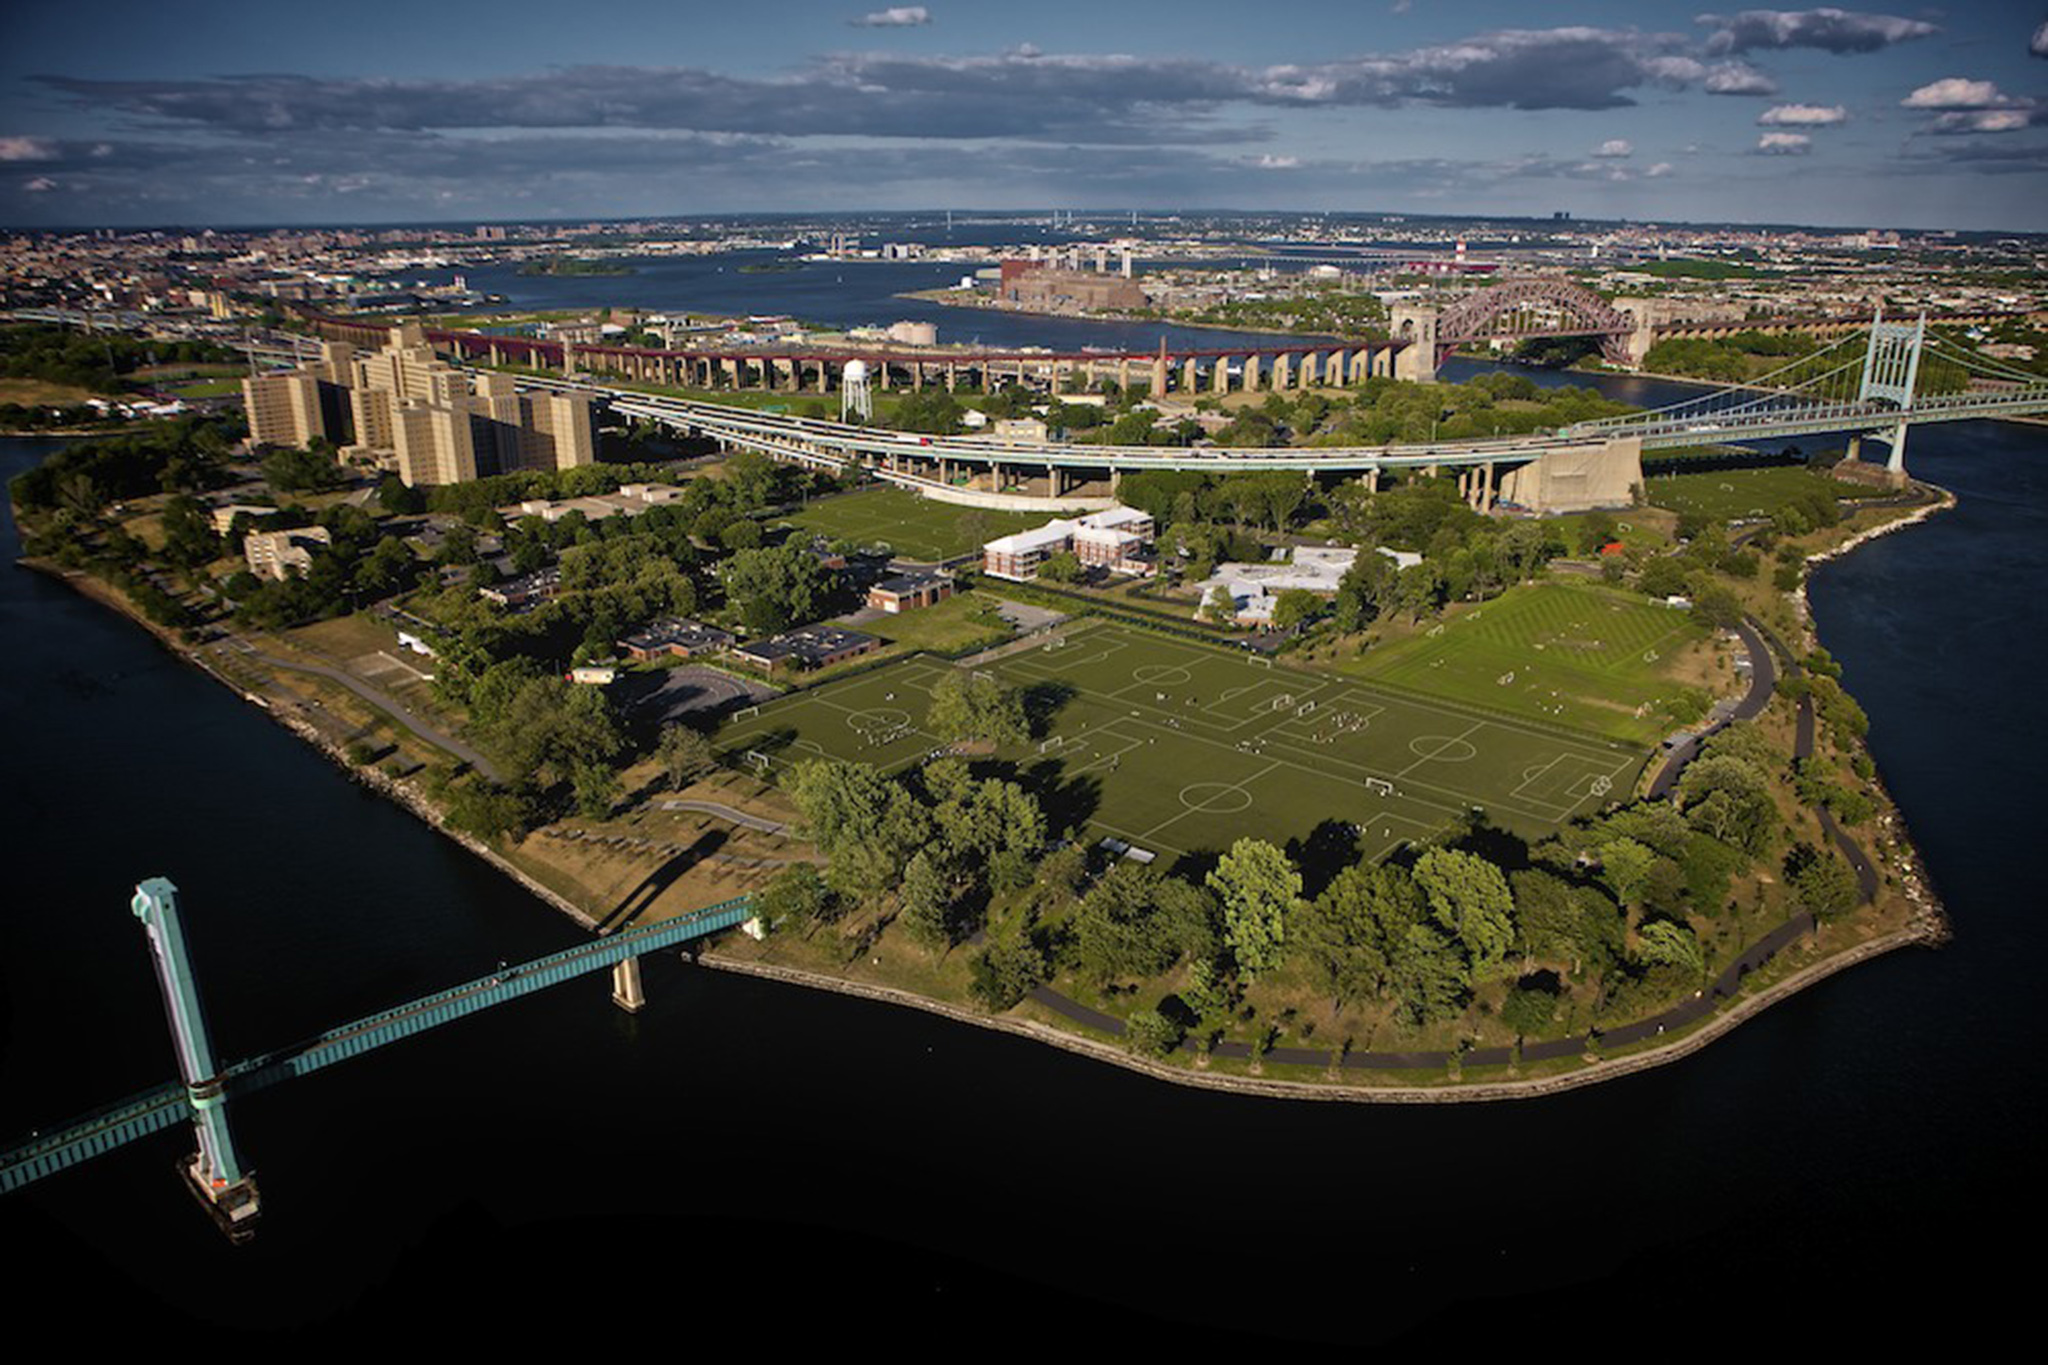 Randall's Island Park is a beautiful park and shows the globalization of sports.